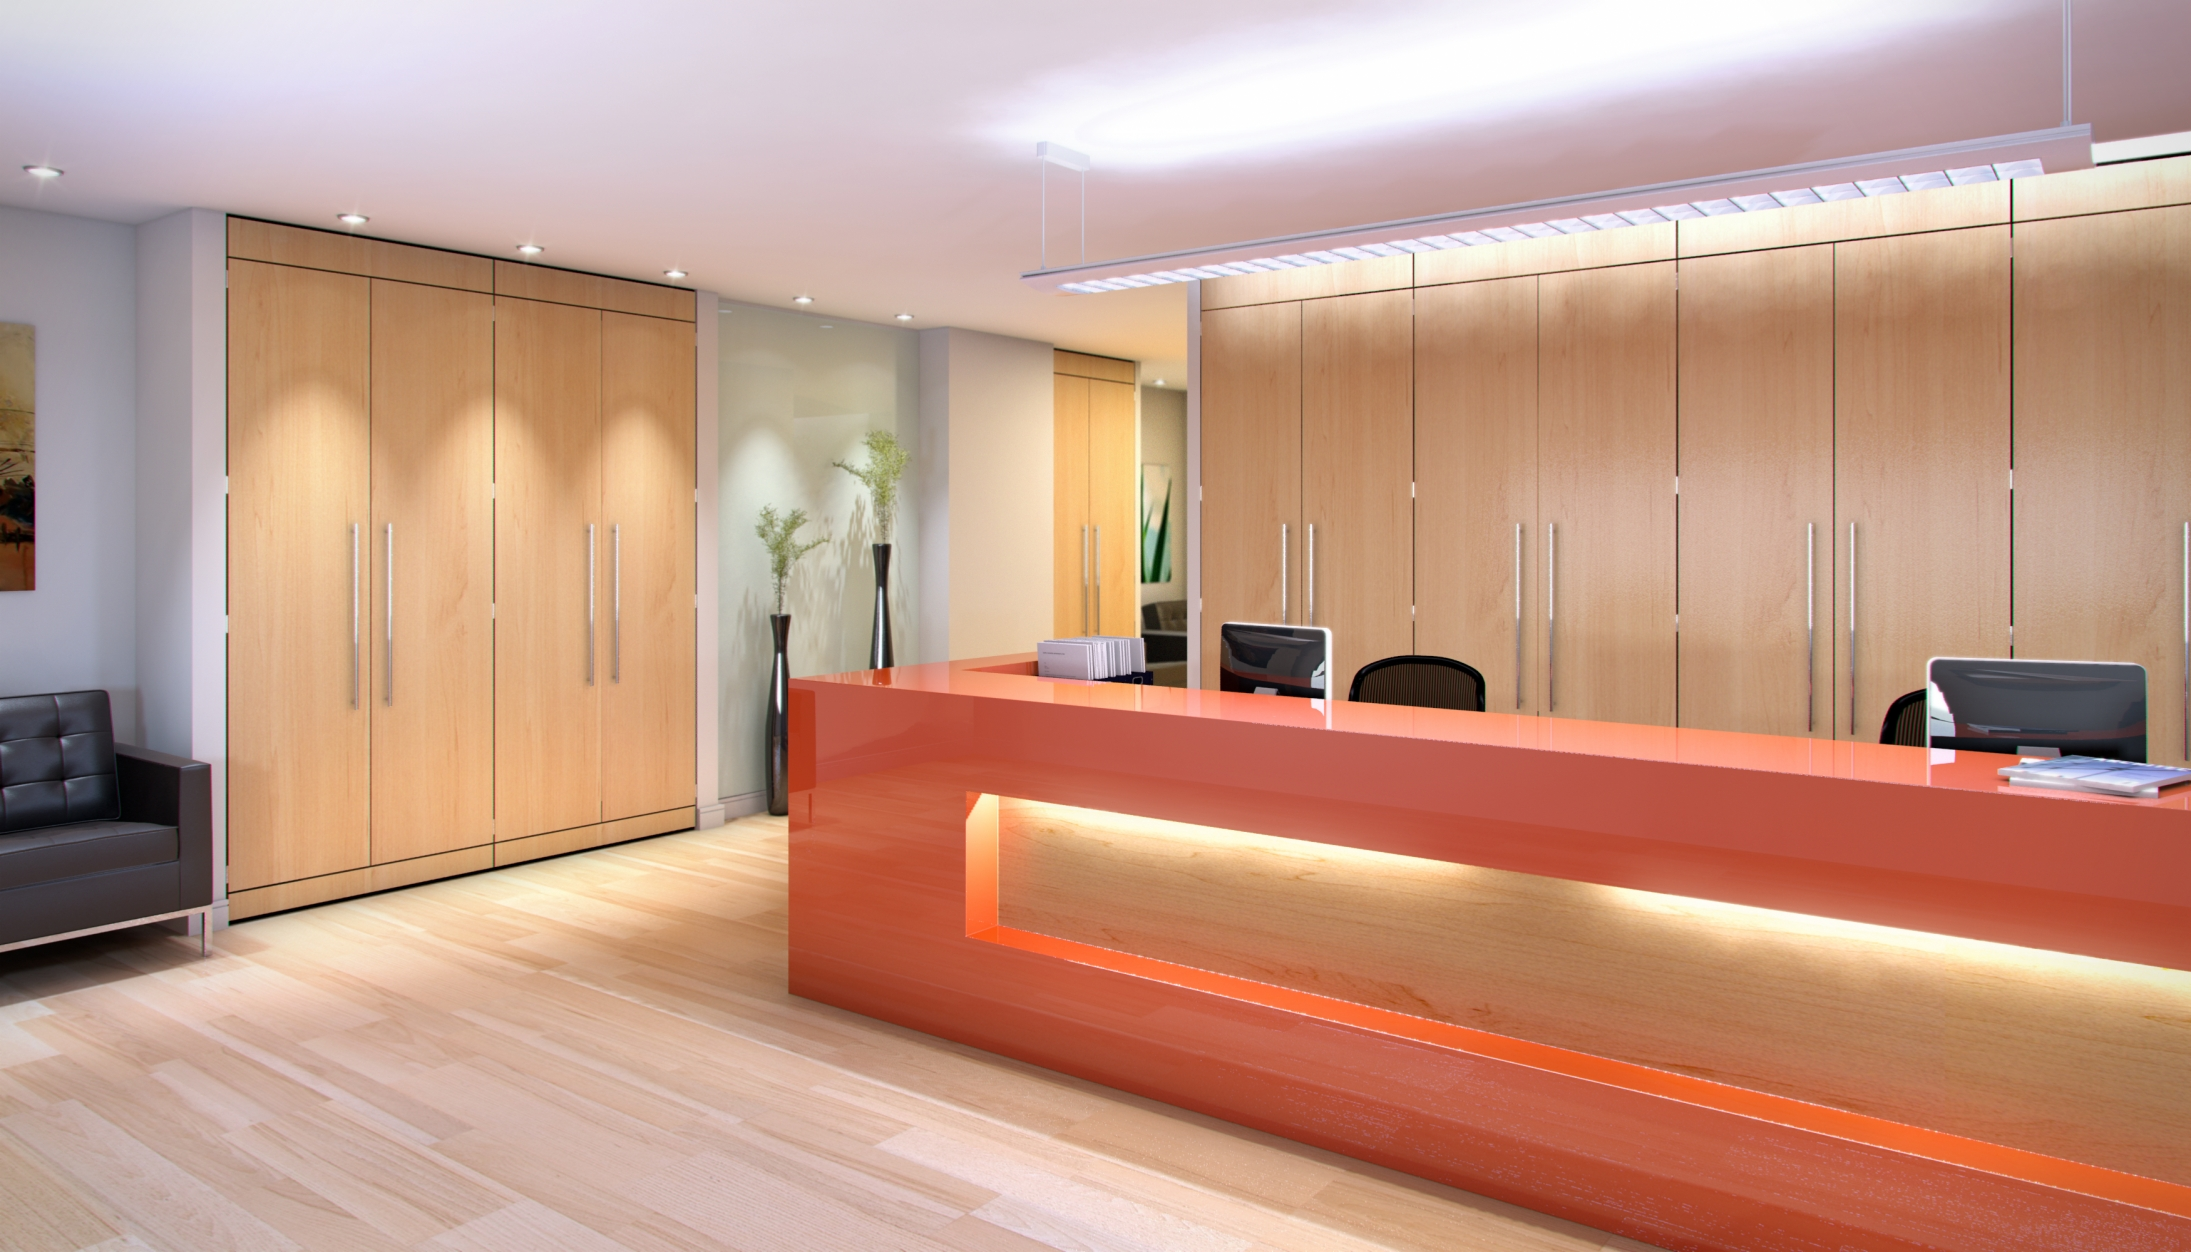 Storage Walls Provide A Versatile Storage System That Can Be Used Full  Height As A Partitioning Wall To Space Divide Or Half Height As Island  Units.